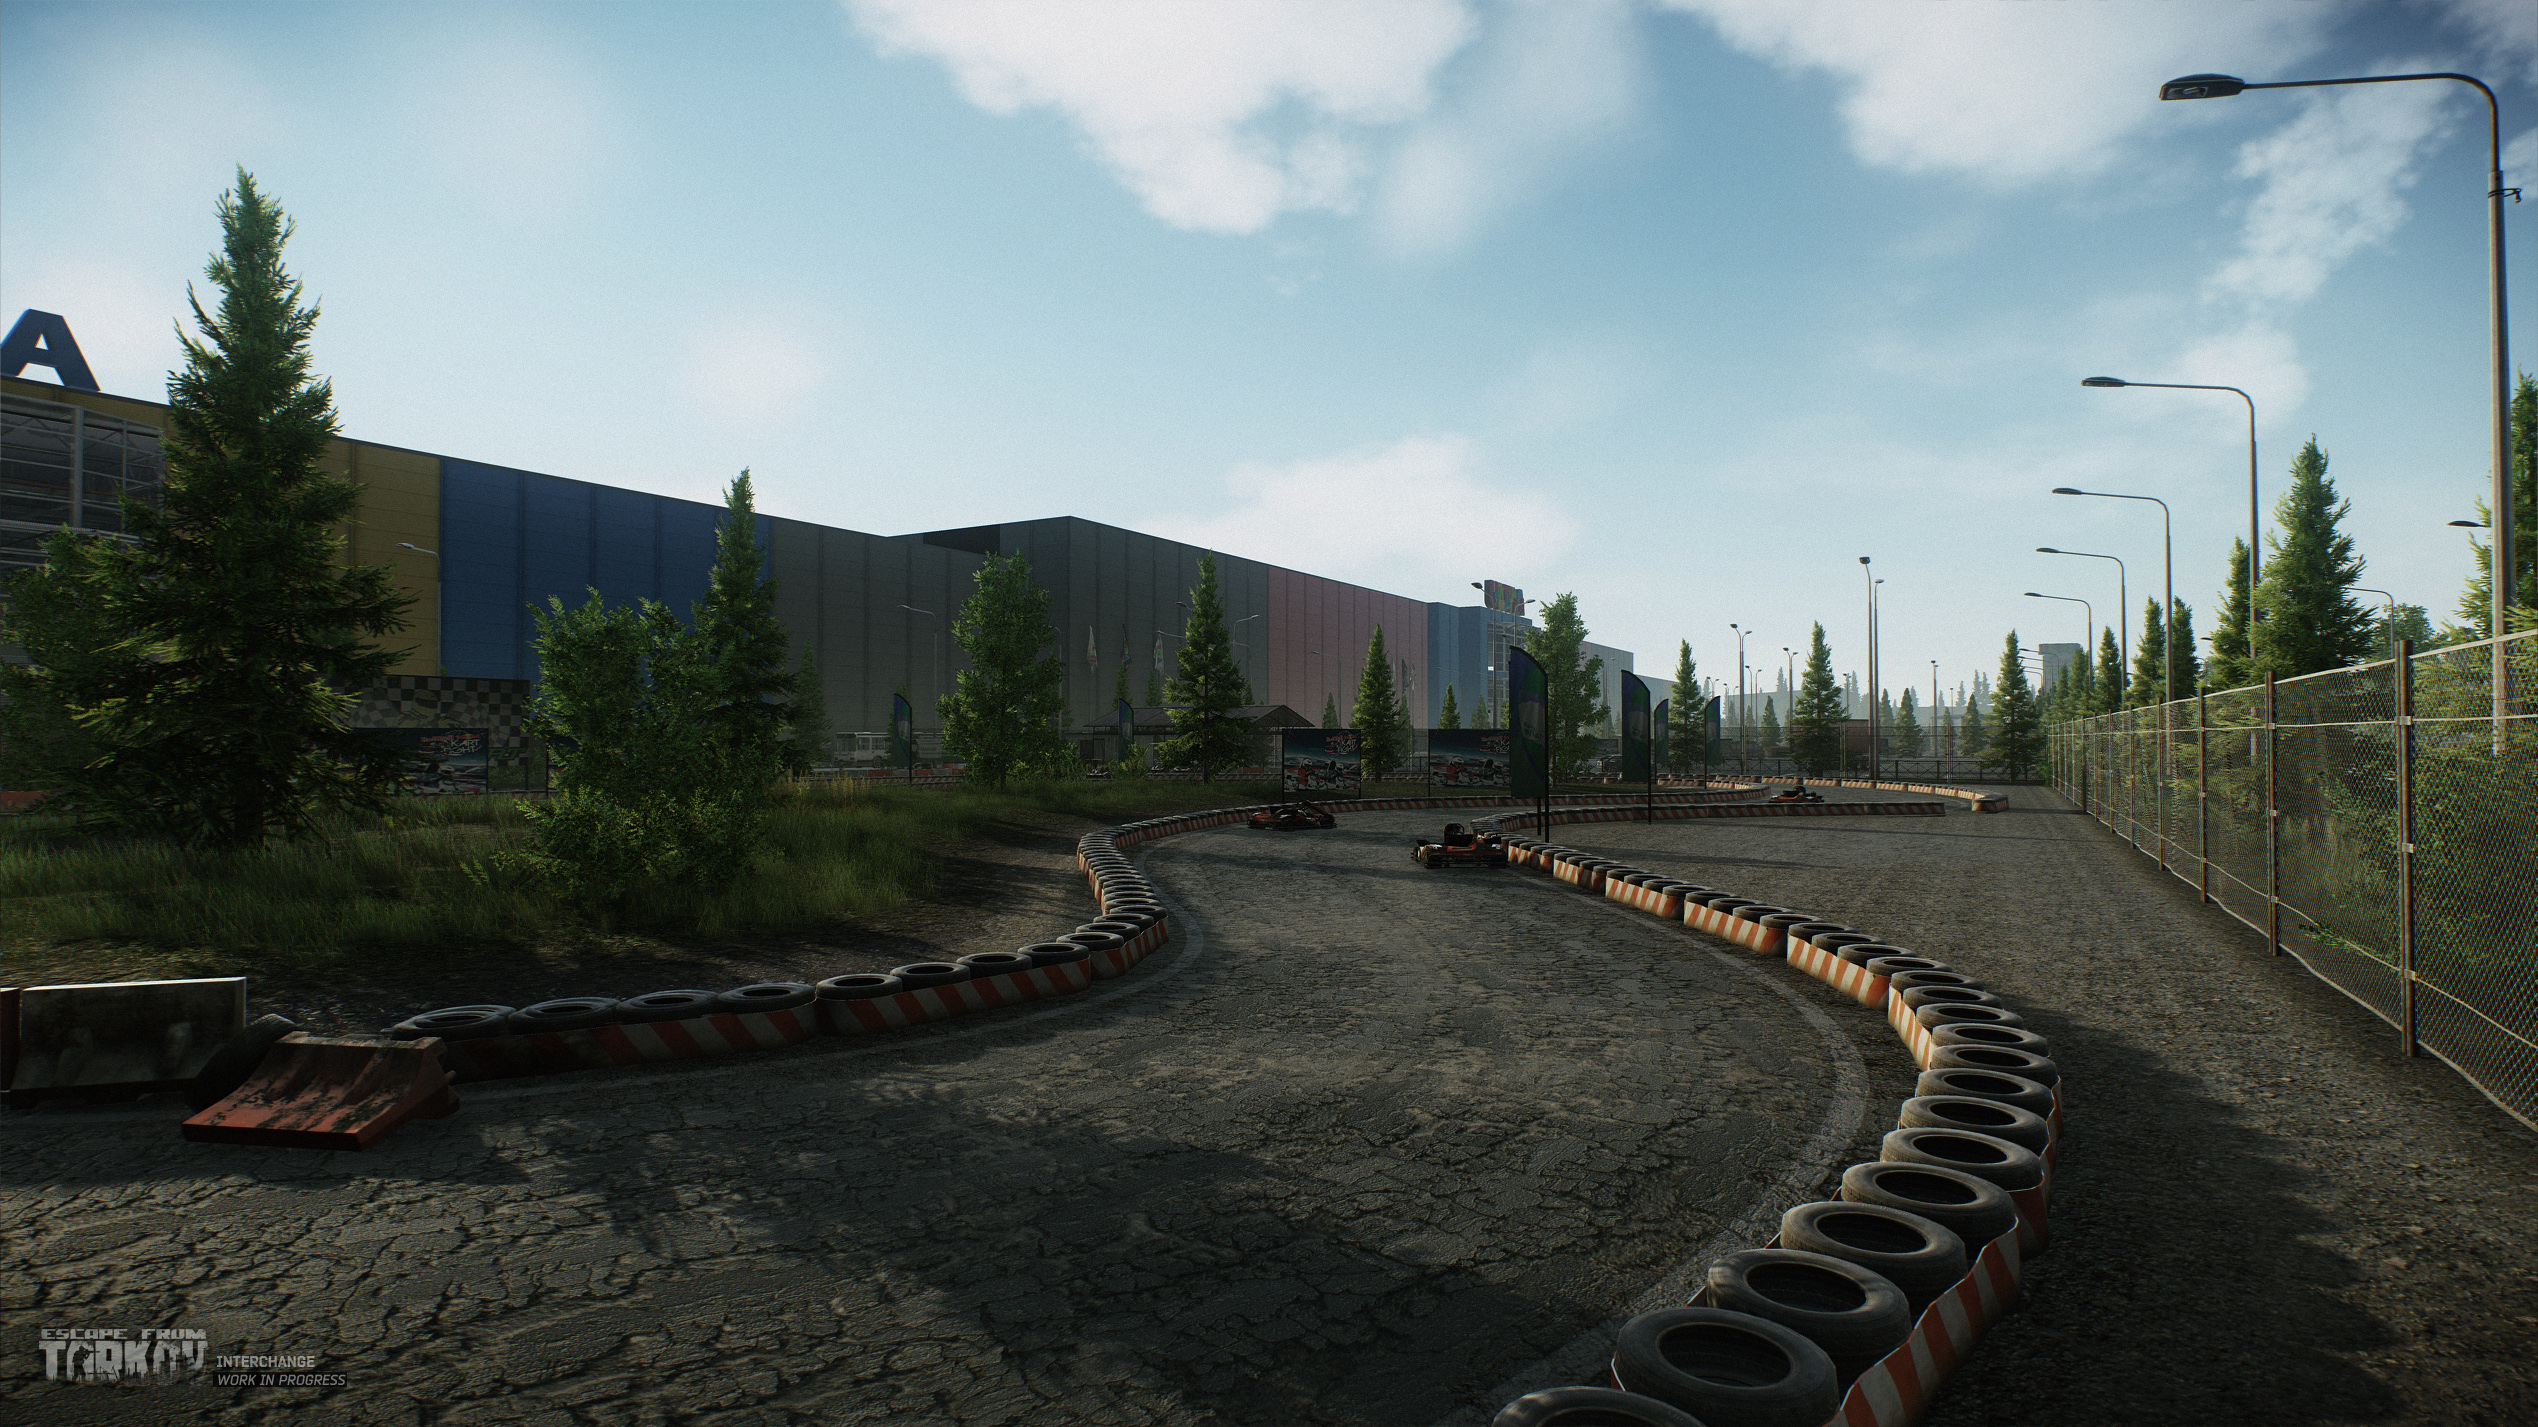 Escape from Tarkov Update 0 8 Adds New Map, Optimizes Games